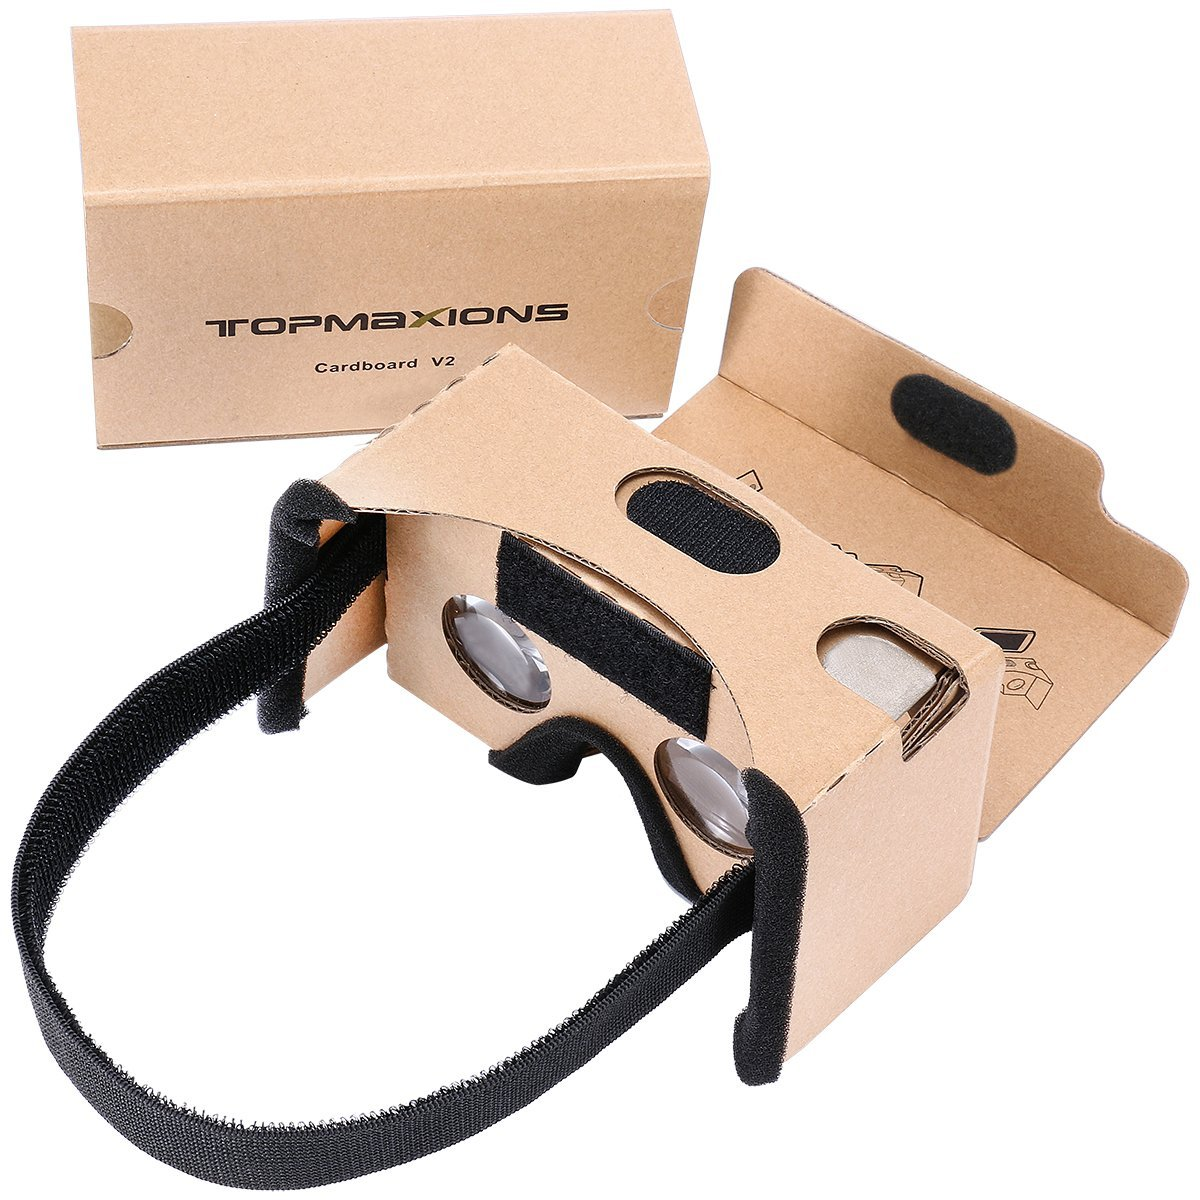 How To Make Virtual Reality Goggles? August 2020